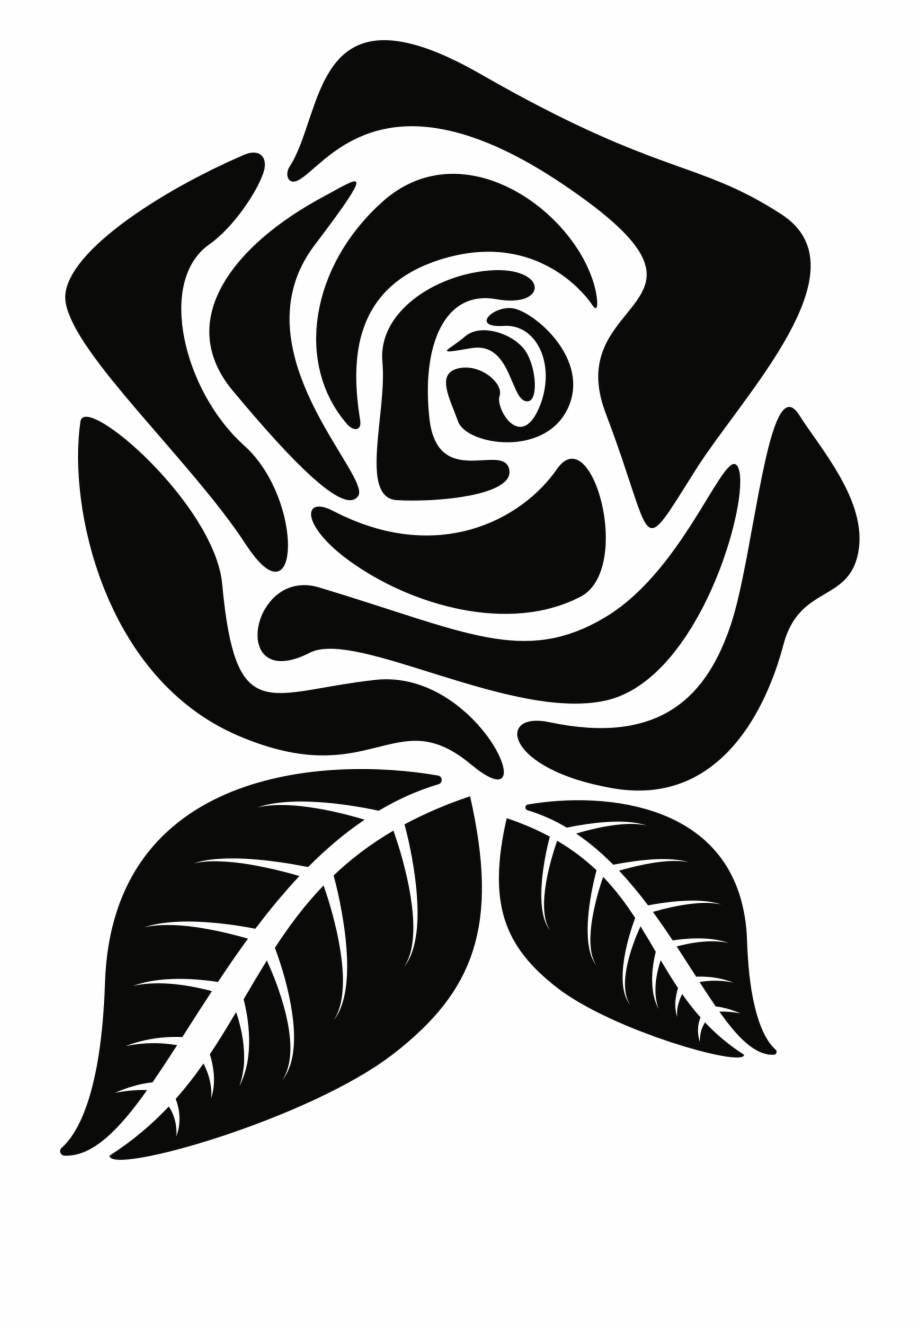 Rose silhouette clipart clip art royalty free stock Rose Silhouette Png - Rose Flower Silhouette Png Free PNG ... clip art royalty free stock